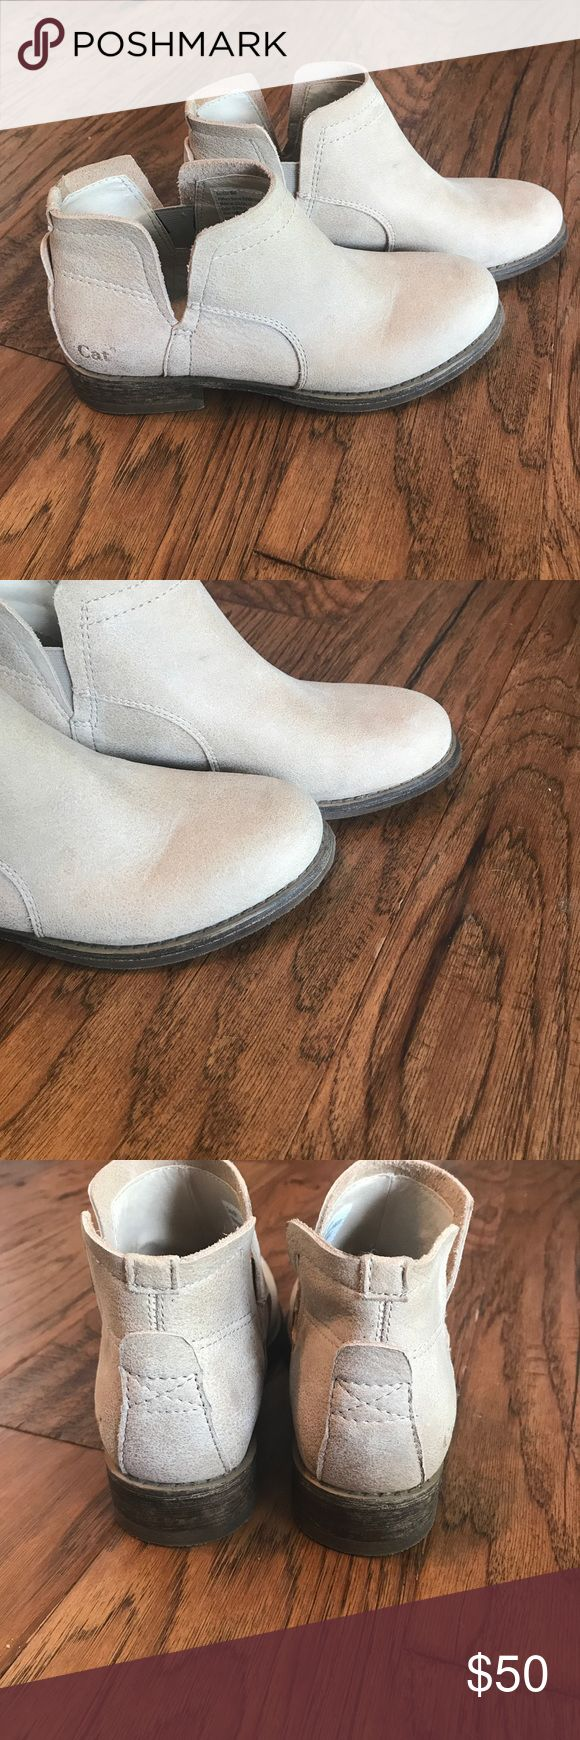 """CAT footwear """"summer core boots"""" Never worn. Too snug. Would fit about a 6.5 or a small 7! Caterpillar Shoes Ankle Boots & Booties"""